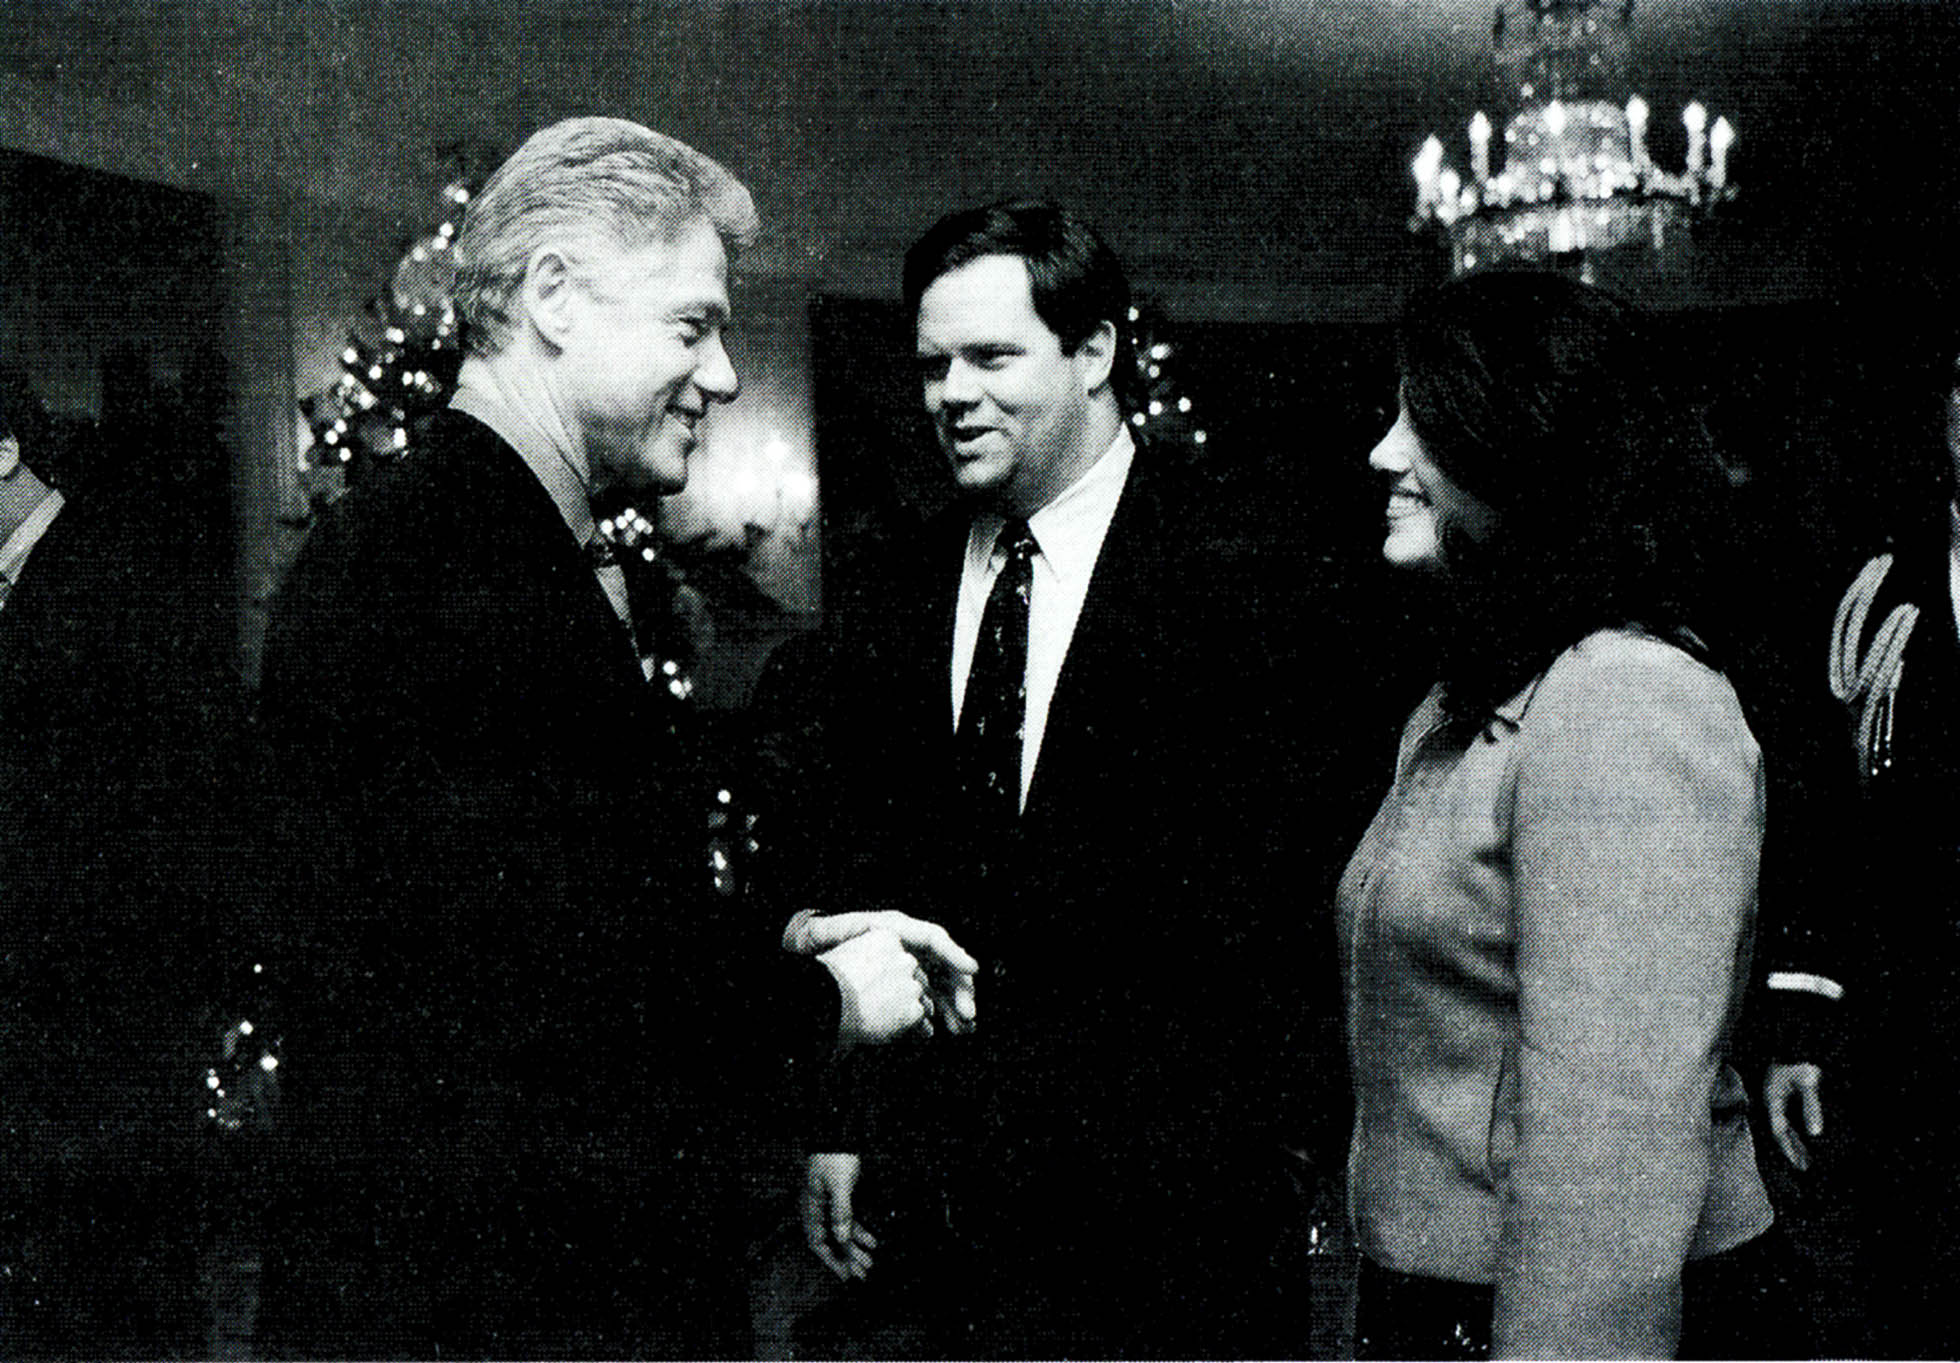 A photograph showing former White House intern Monica Lewinsky meeting President Bill Clinton at a White House Christmas part December 16, 1996 submitted as evidence in documents by the Starr investigation and released by the House Judicary committee September 21, 1998.